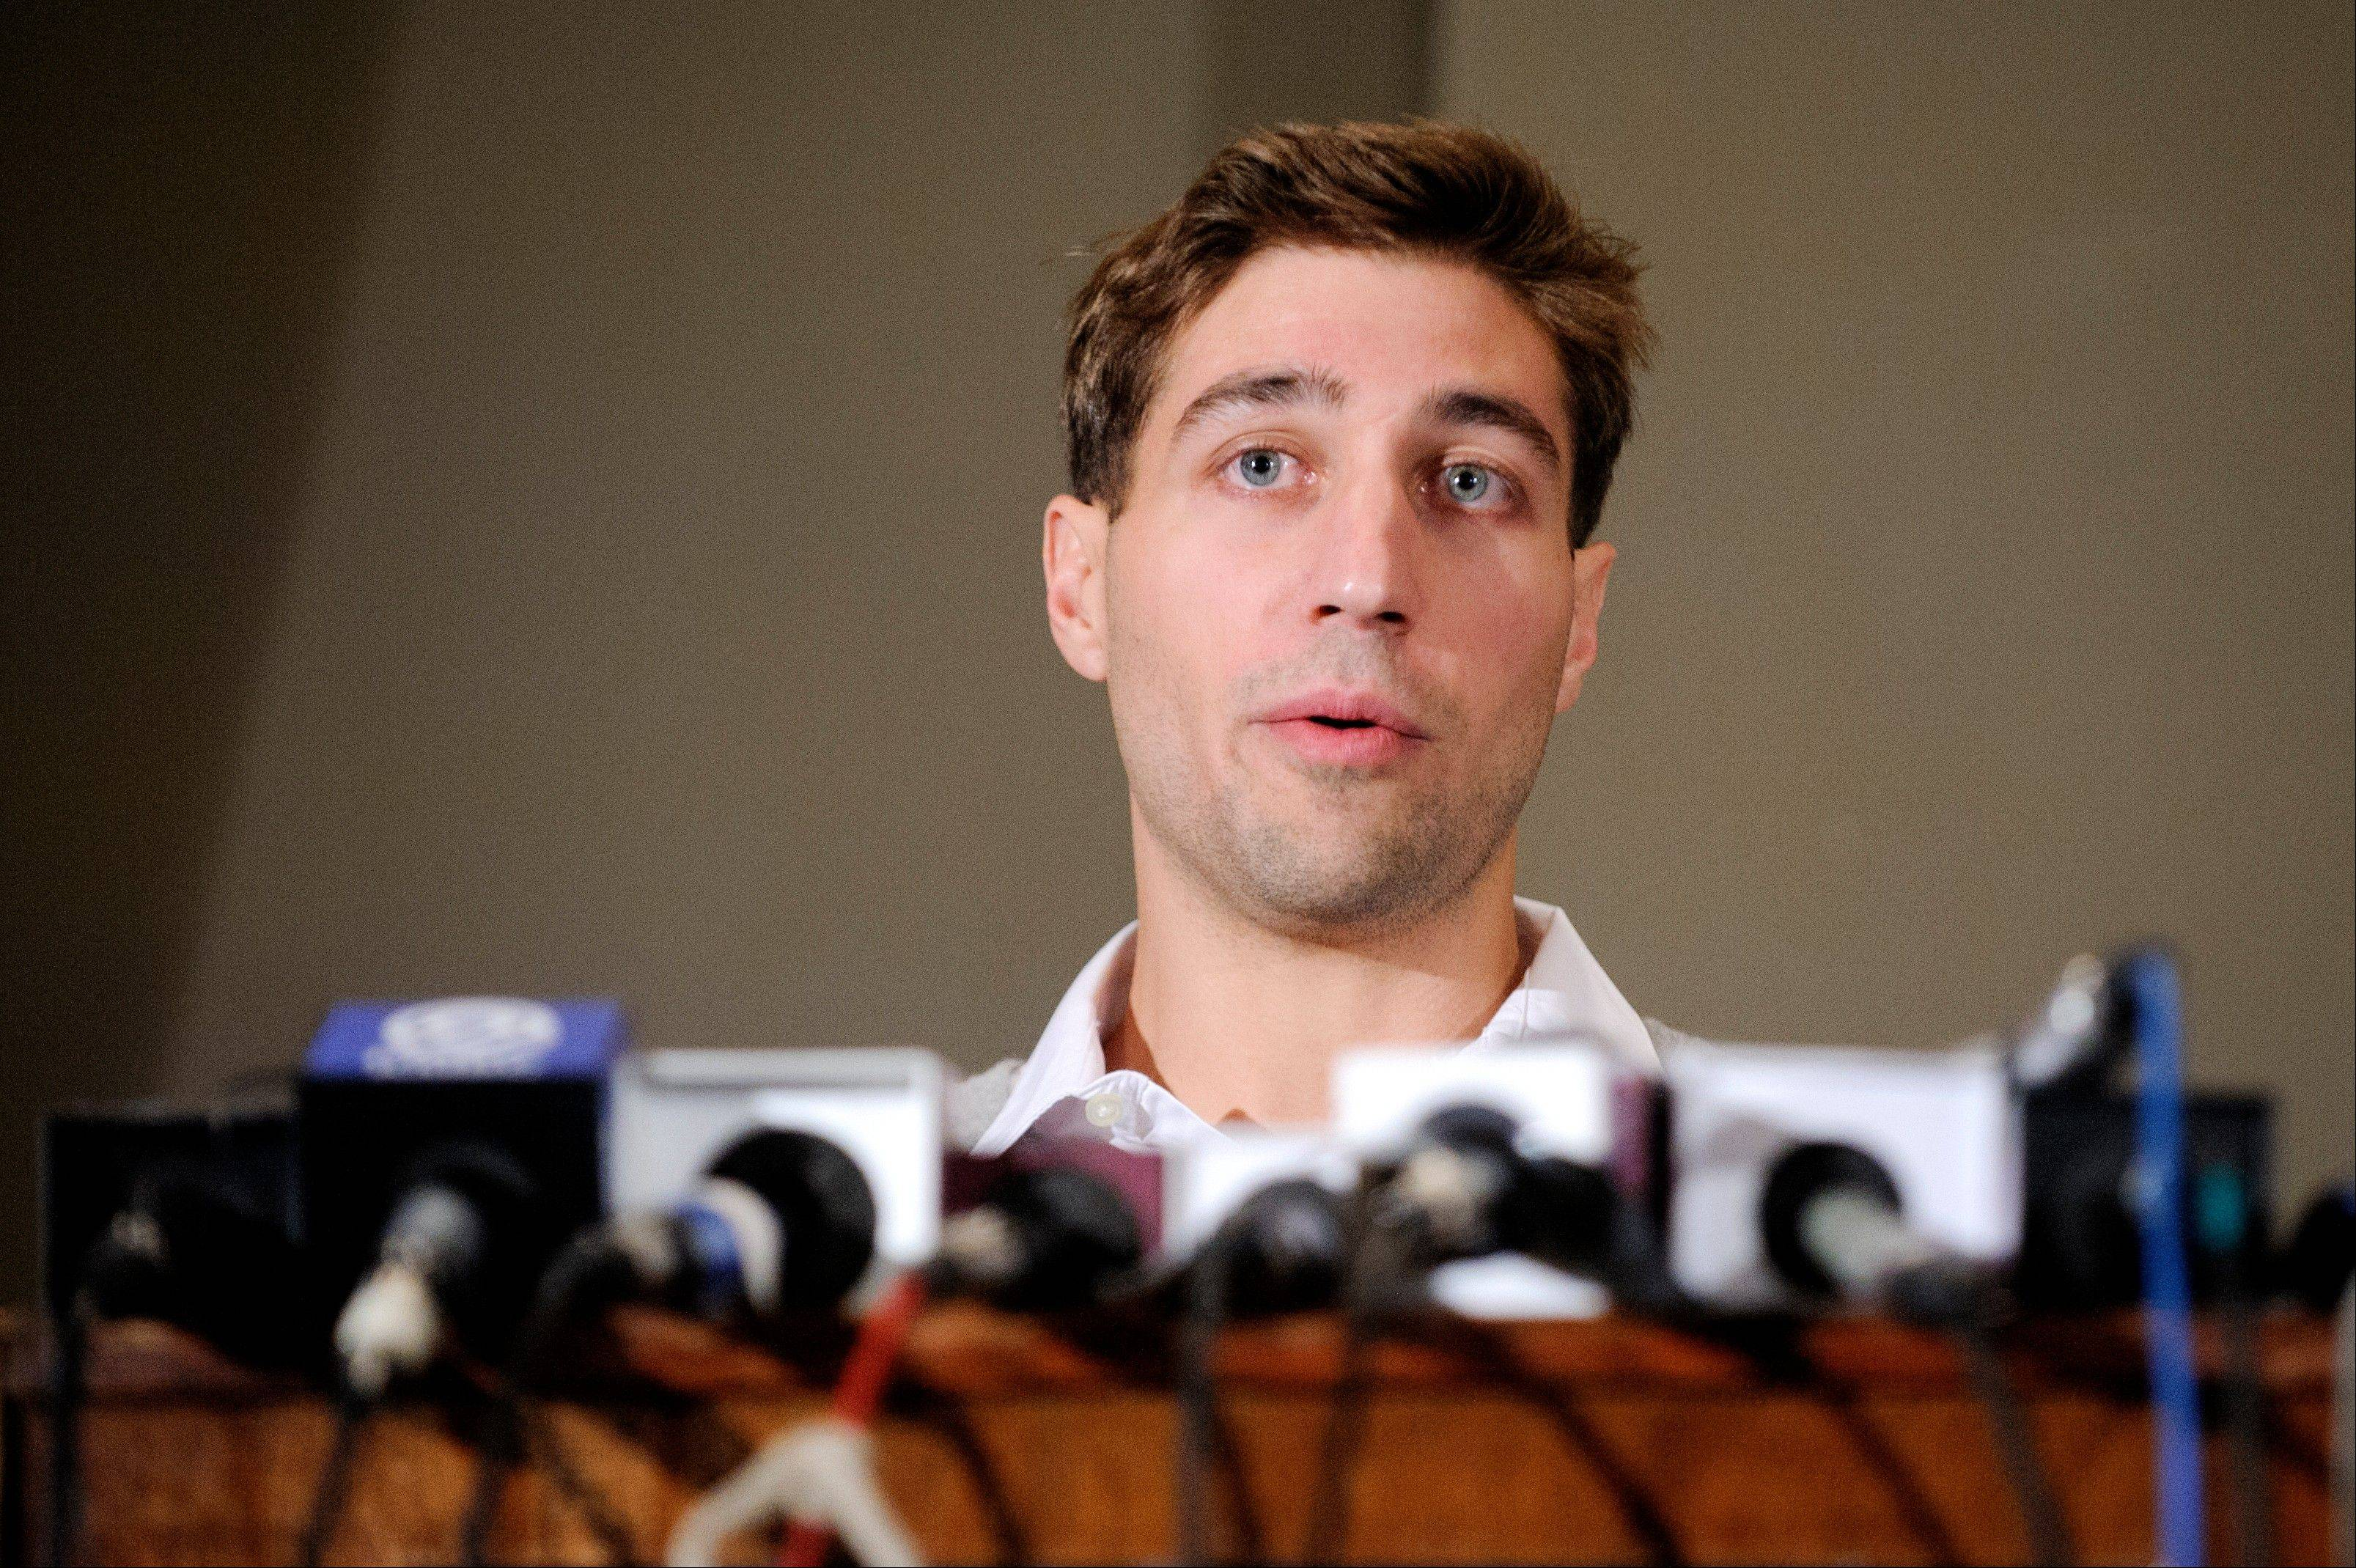 A Missouri appeals court overturned Ryan Ferguson�s murder and robbery convictions for the 2001 strangling and beating death of Columbia Daily Tribune sports editor Kent Heitholt. The appeals panel said the prosecutor�s office had withheld evidence from defense attorneys and Ferguson did not receive a fair trial.